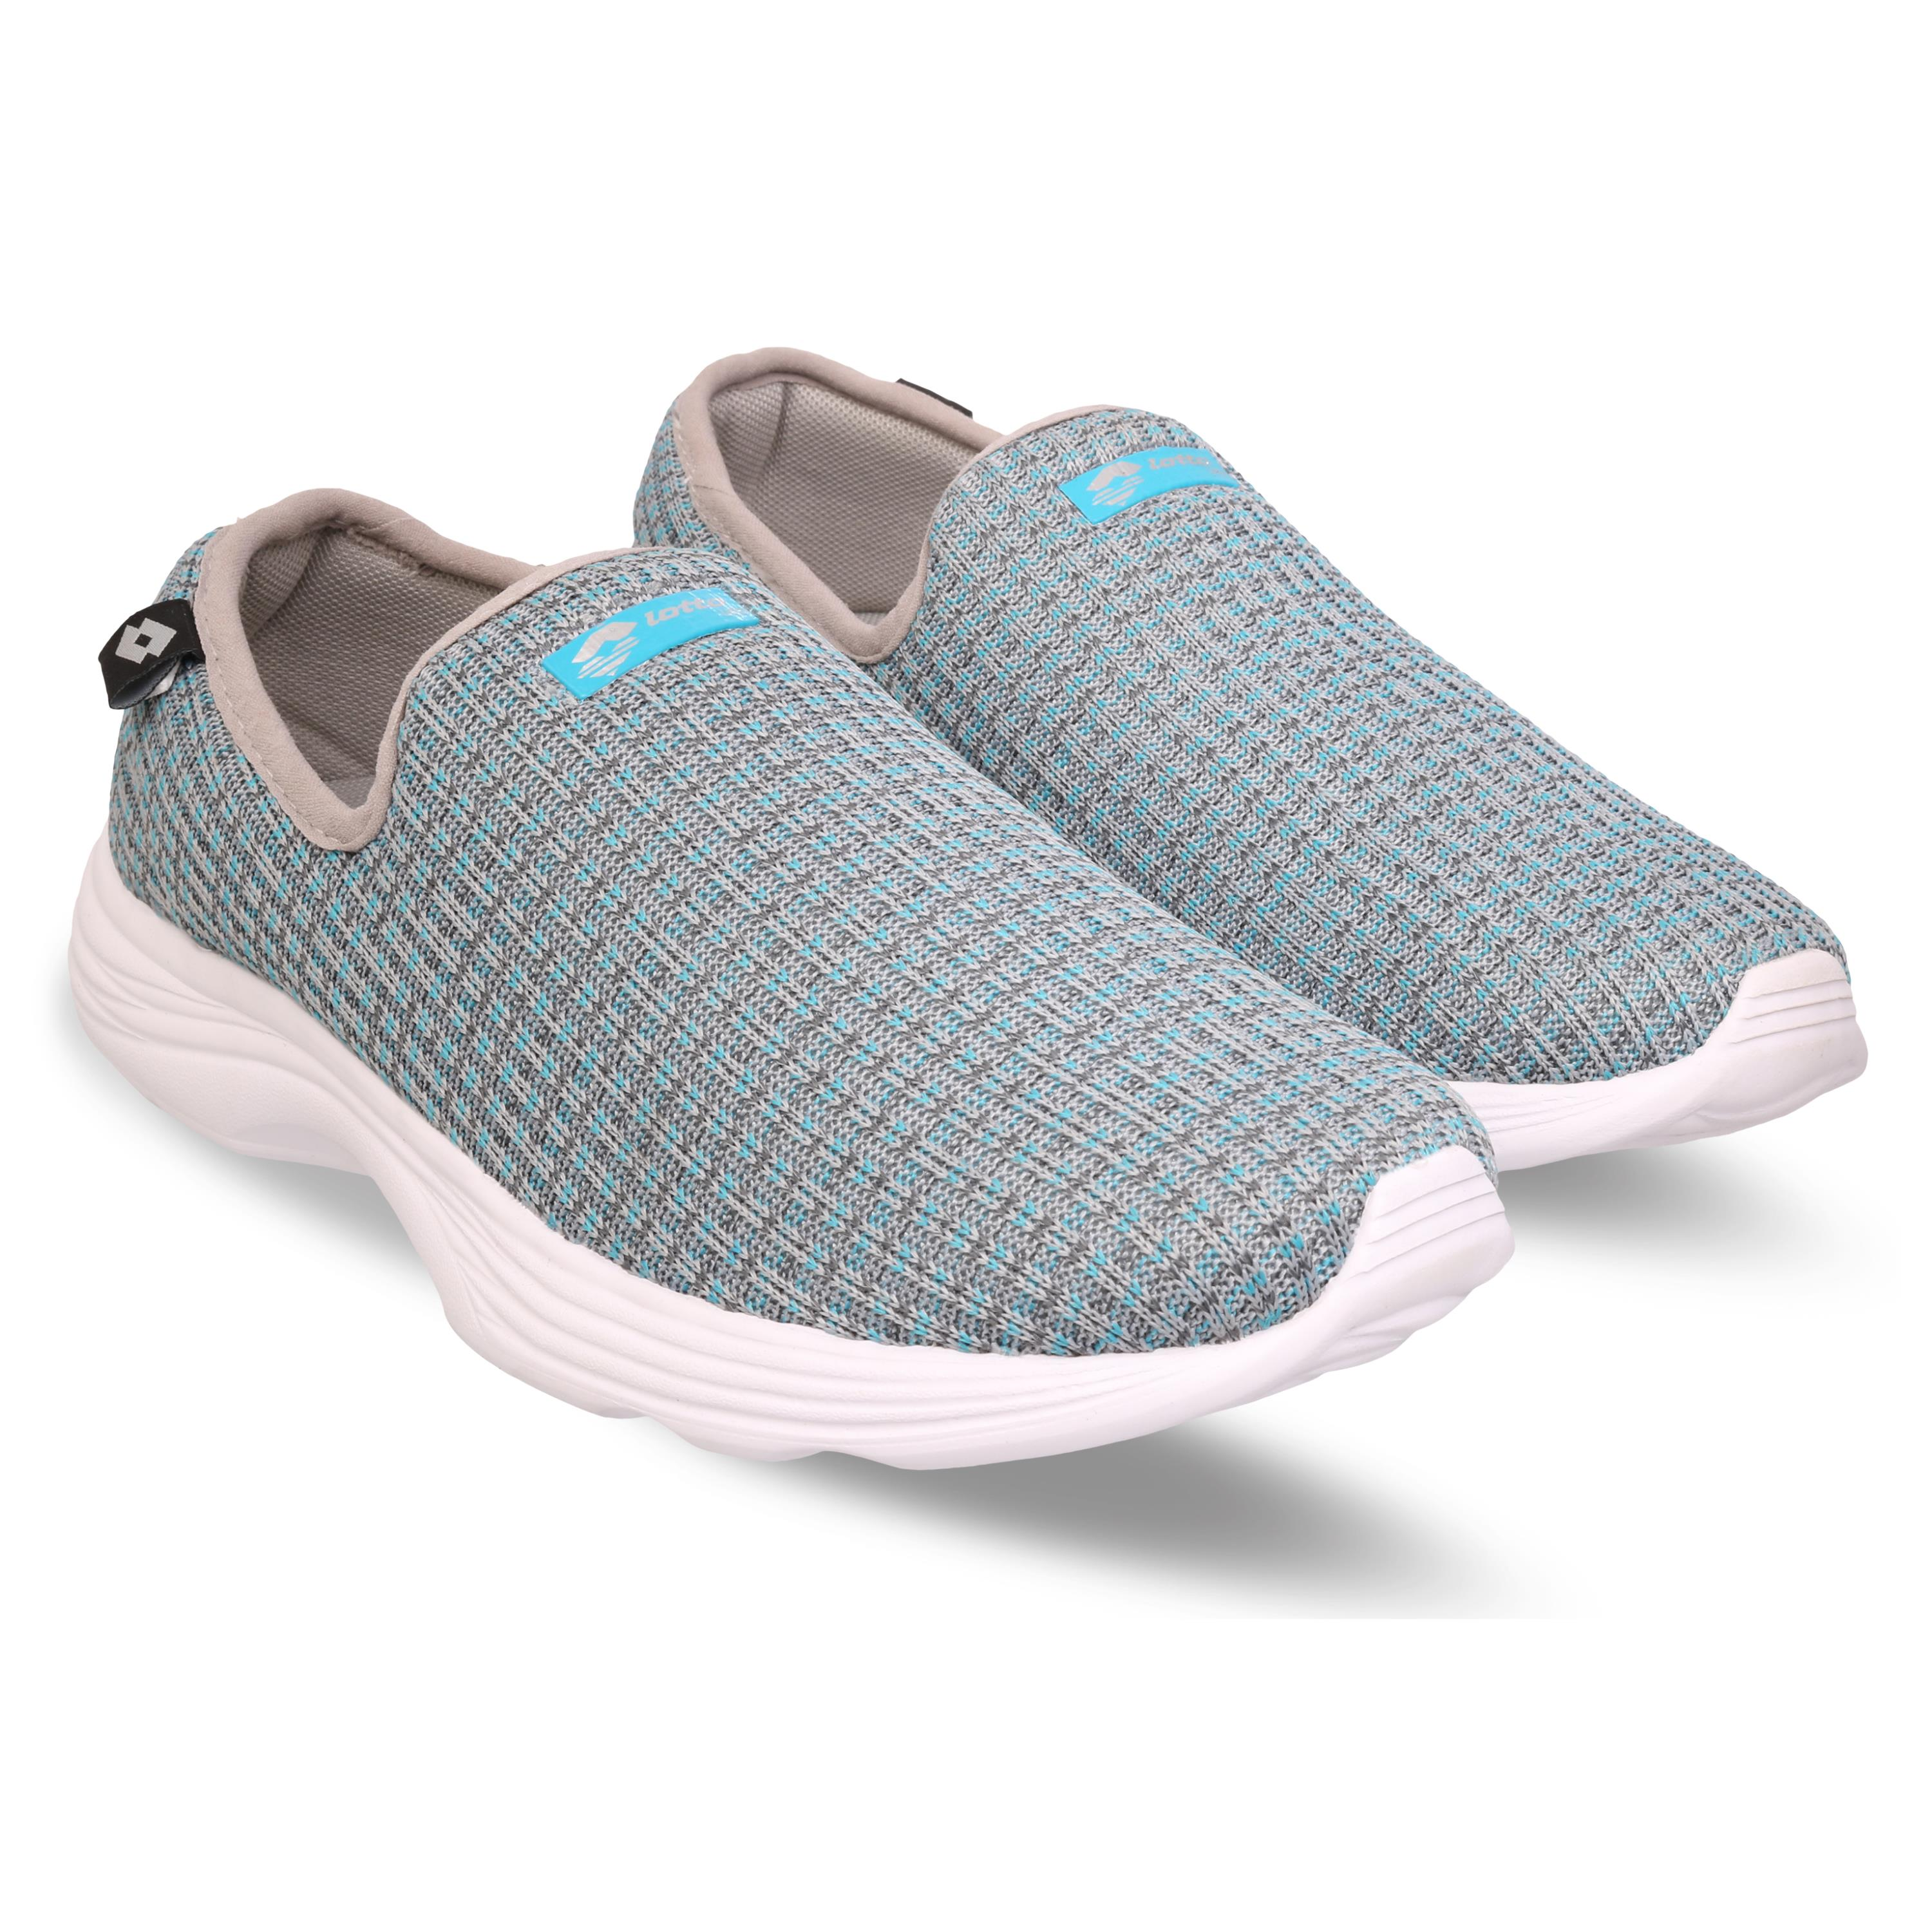 Lotto | Lotto Women's Runlite Slip On Turquoise/Grey Training Shoes